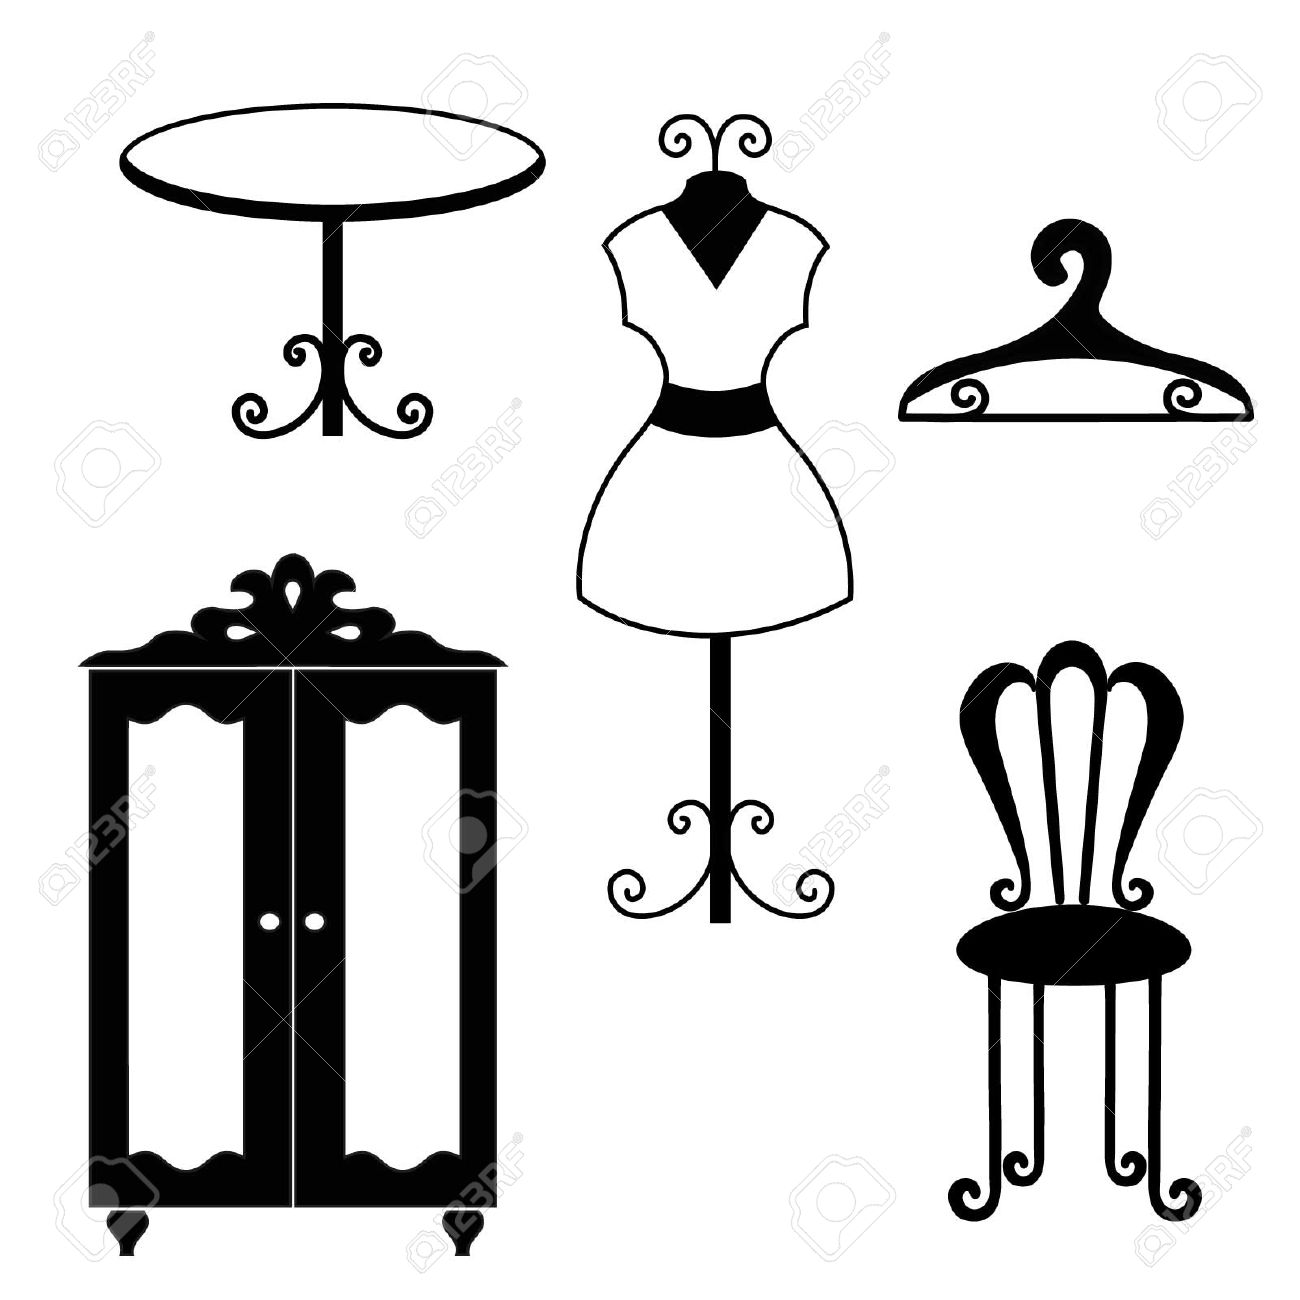 Antique chair silhouette - Antique Furniture Silhouettes Stock Vector 15490585